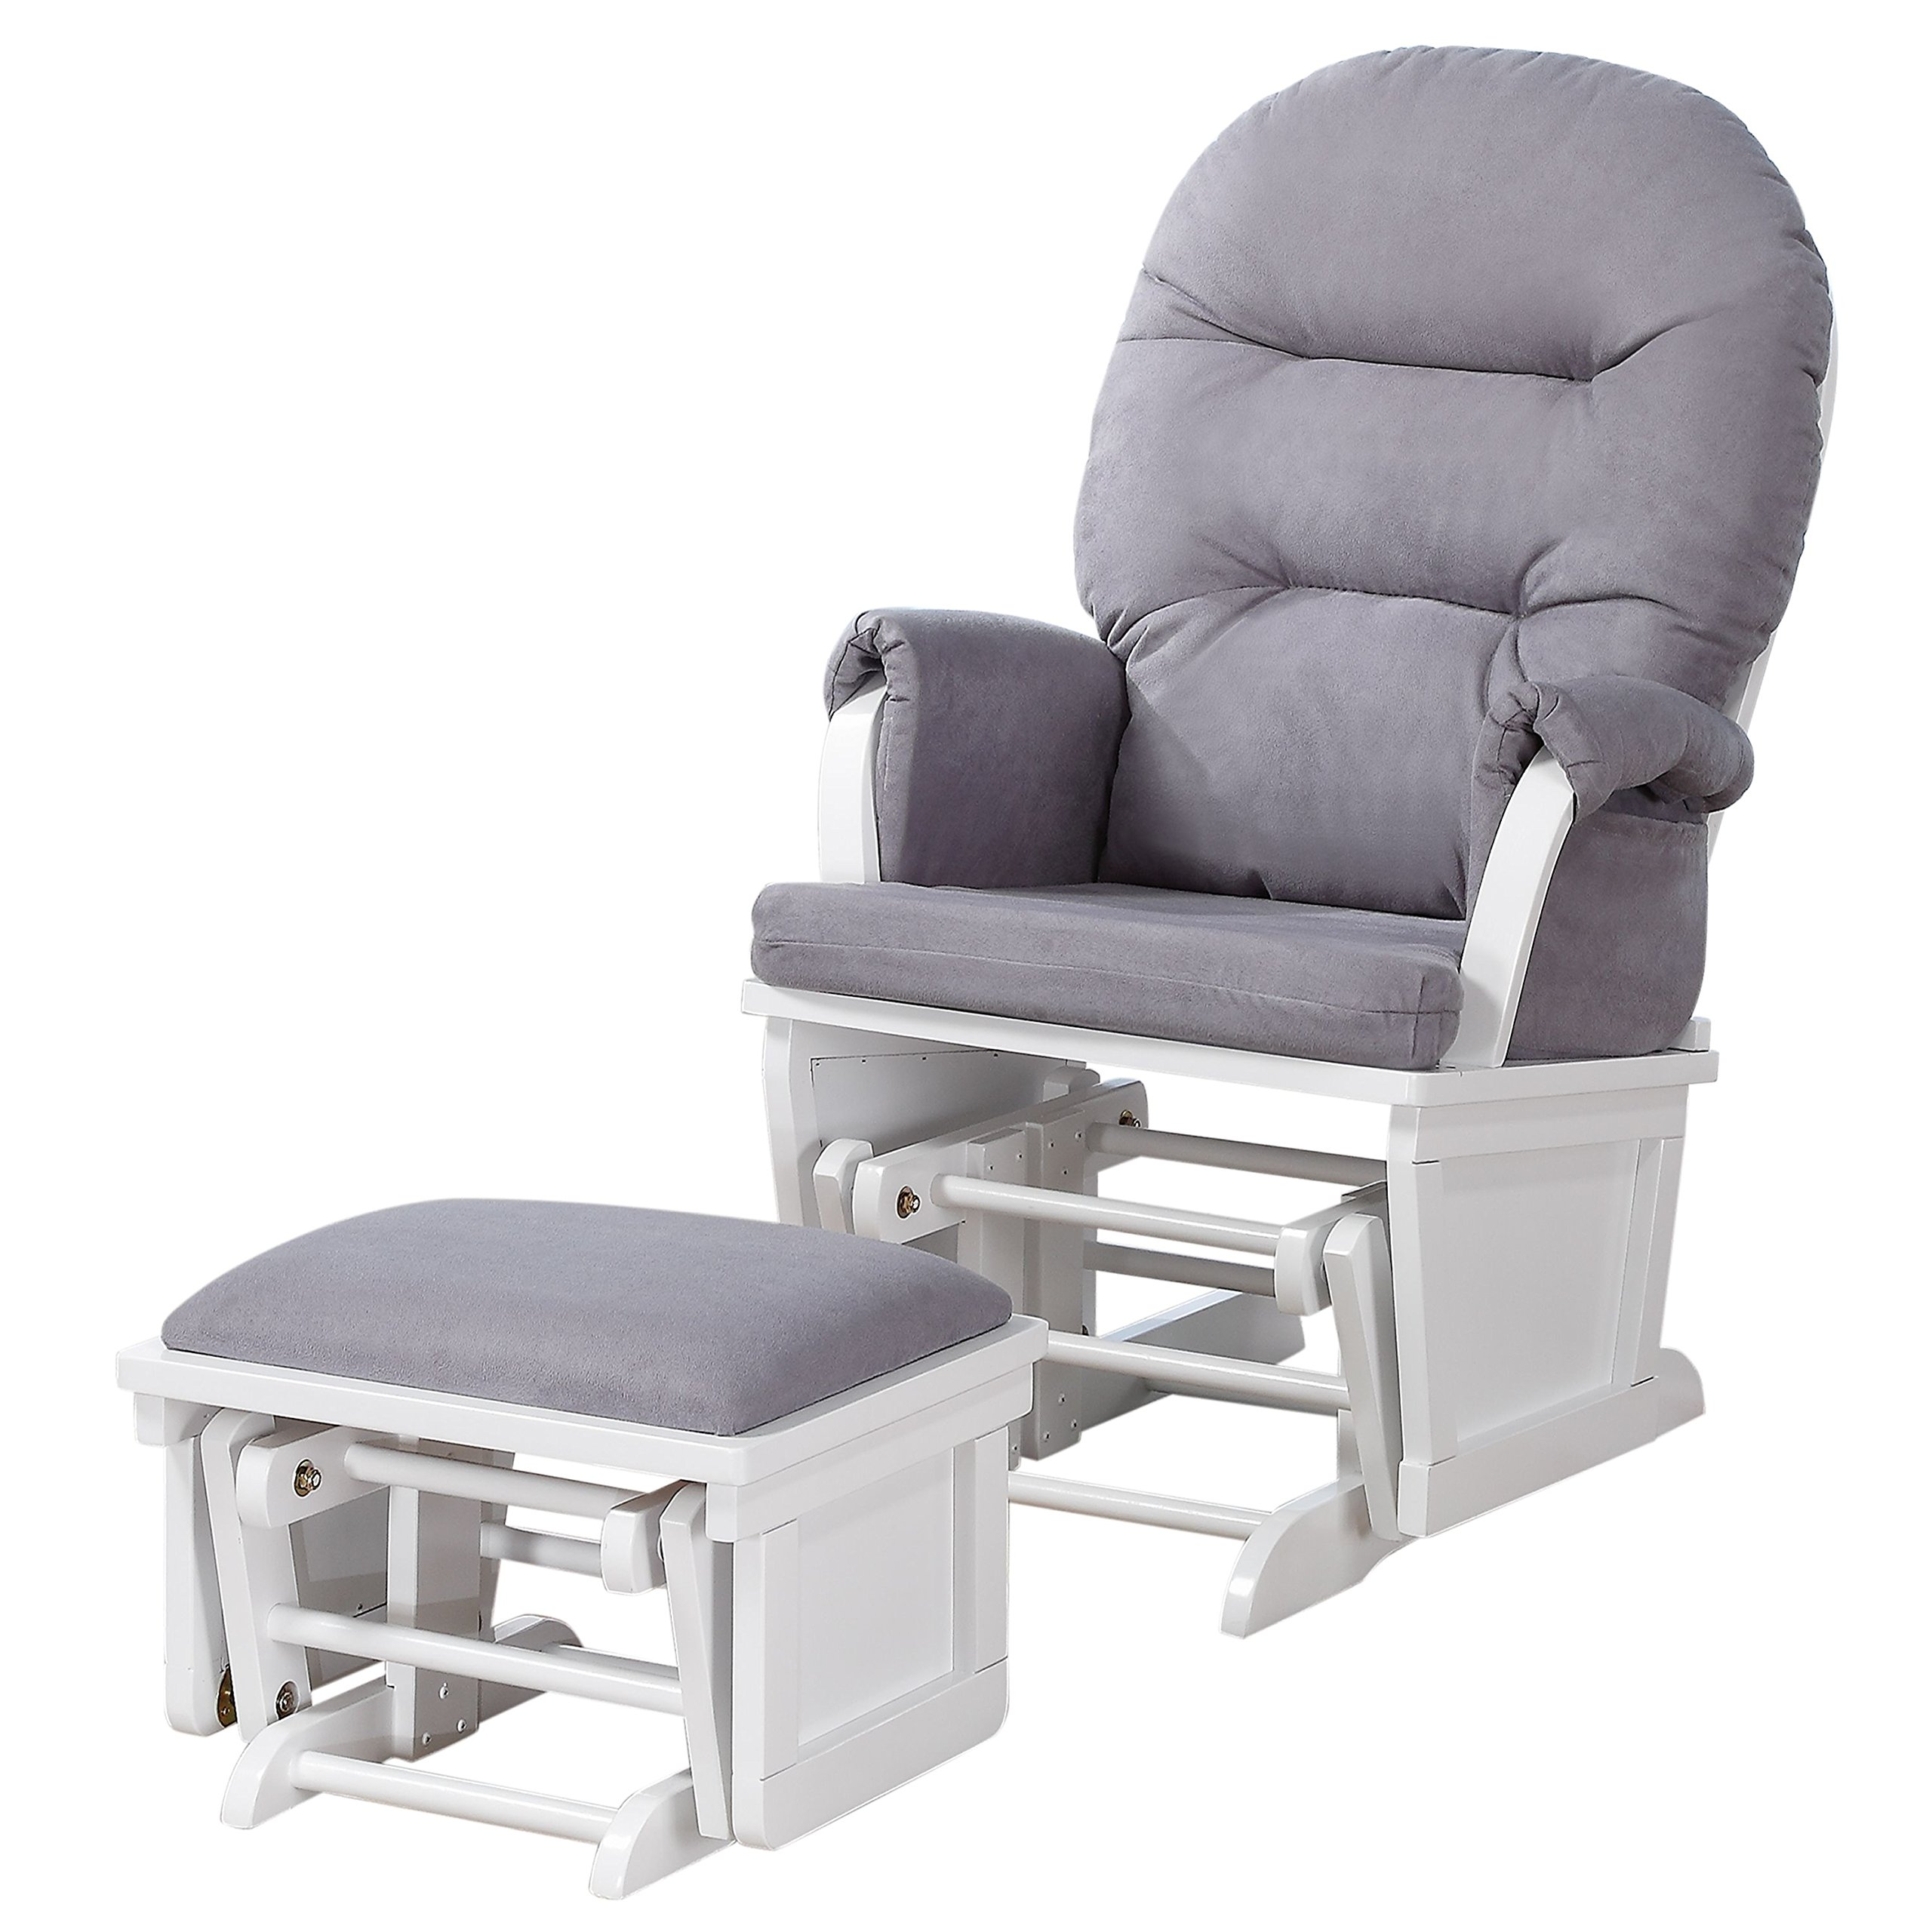 Shermag Contemporary Style Glider Rocker and Ottoman, White with Grey by Shermag